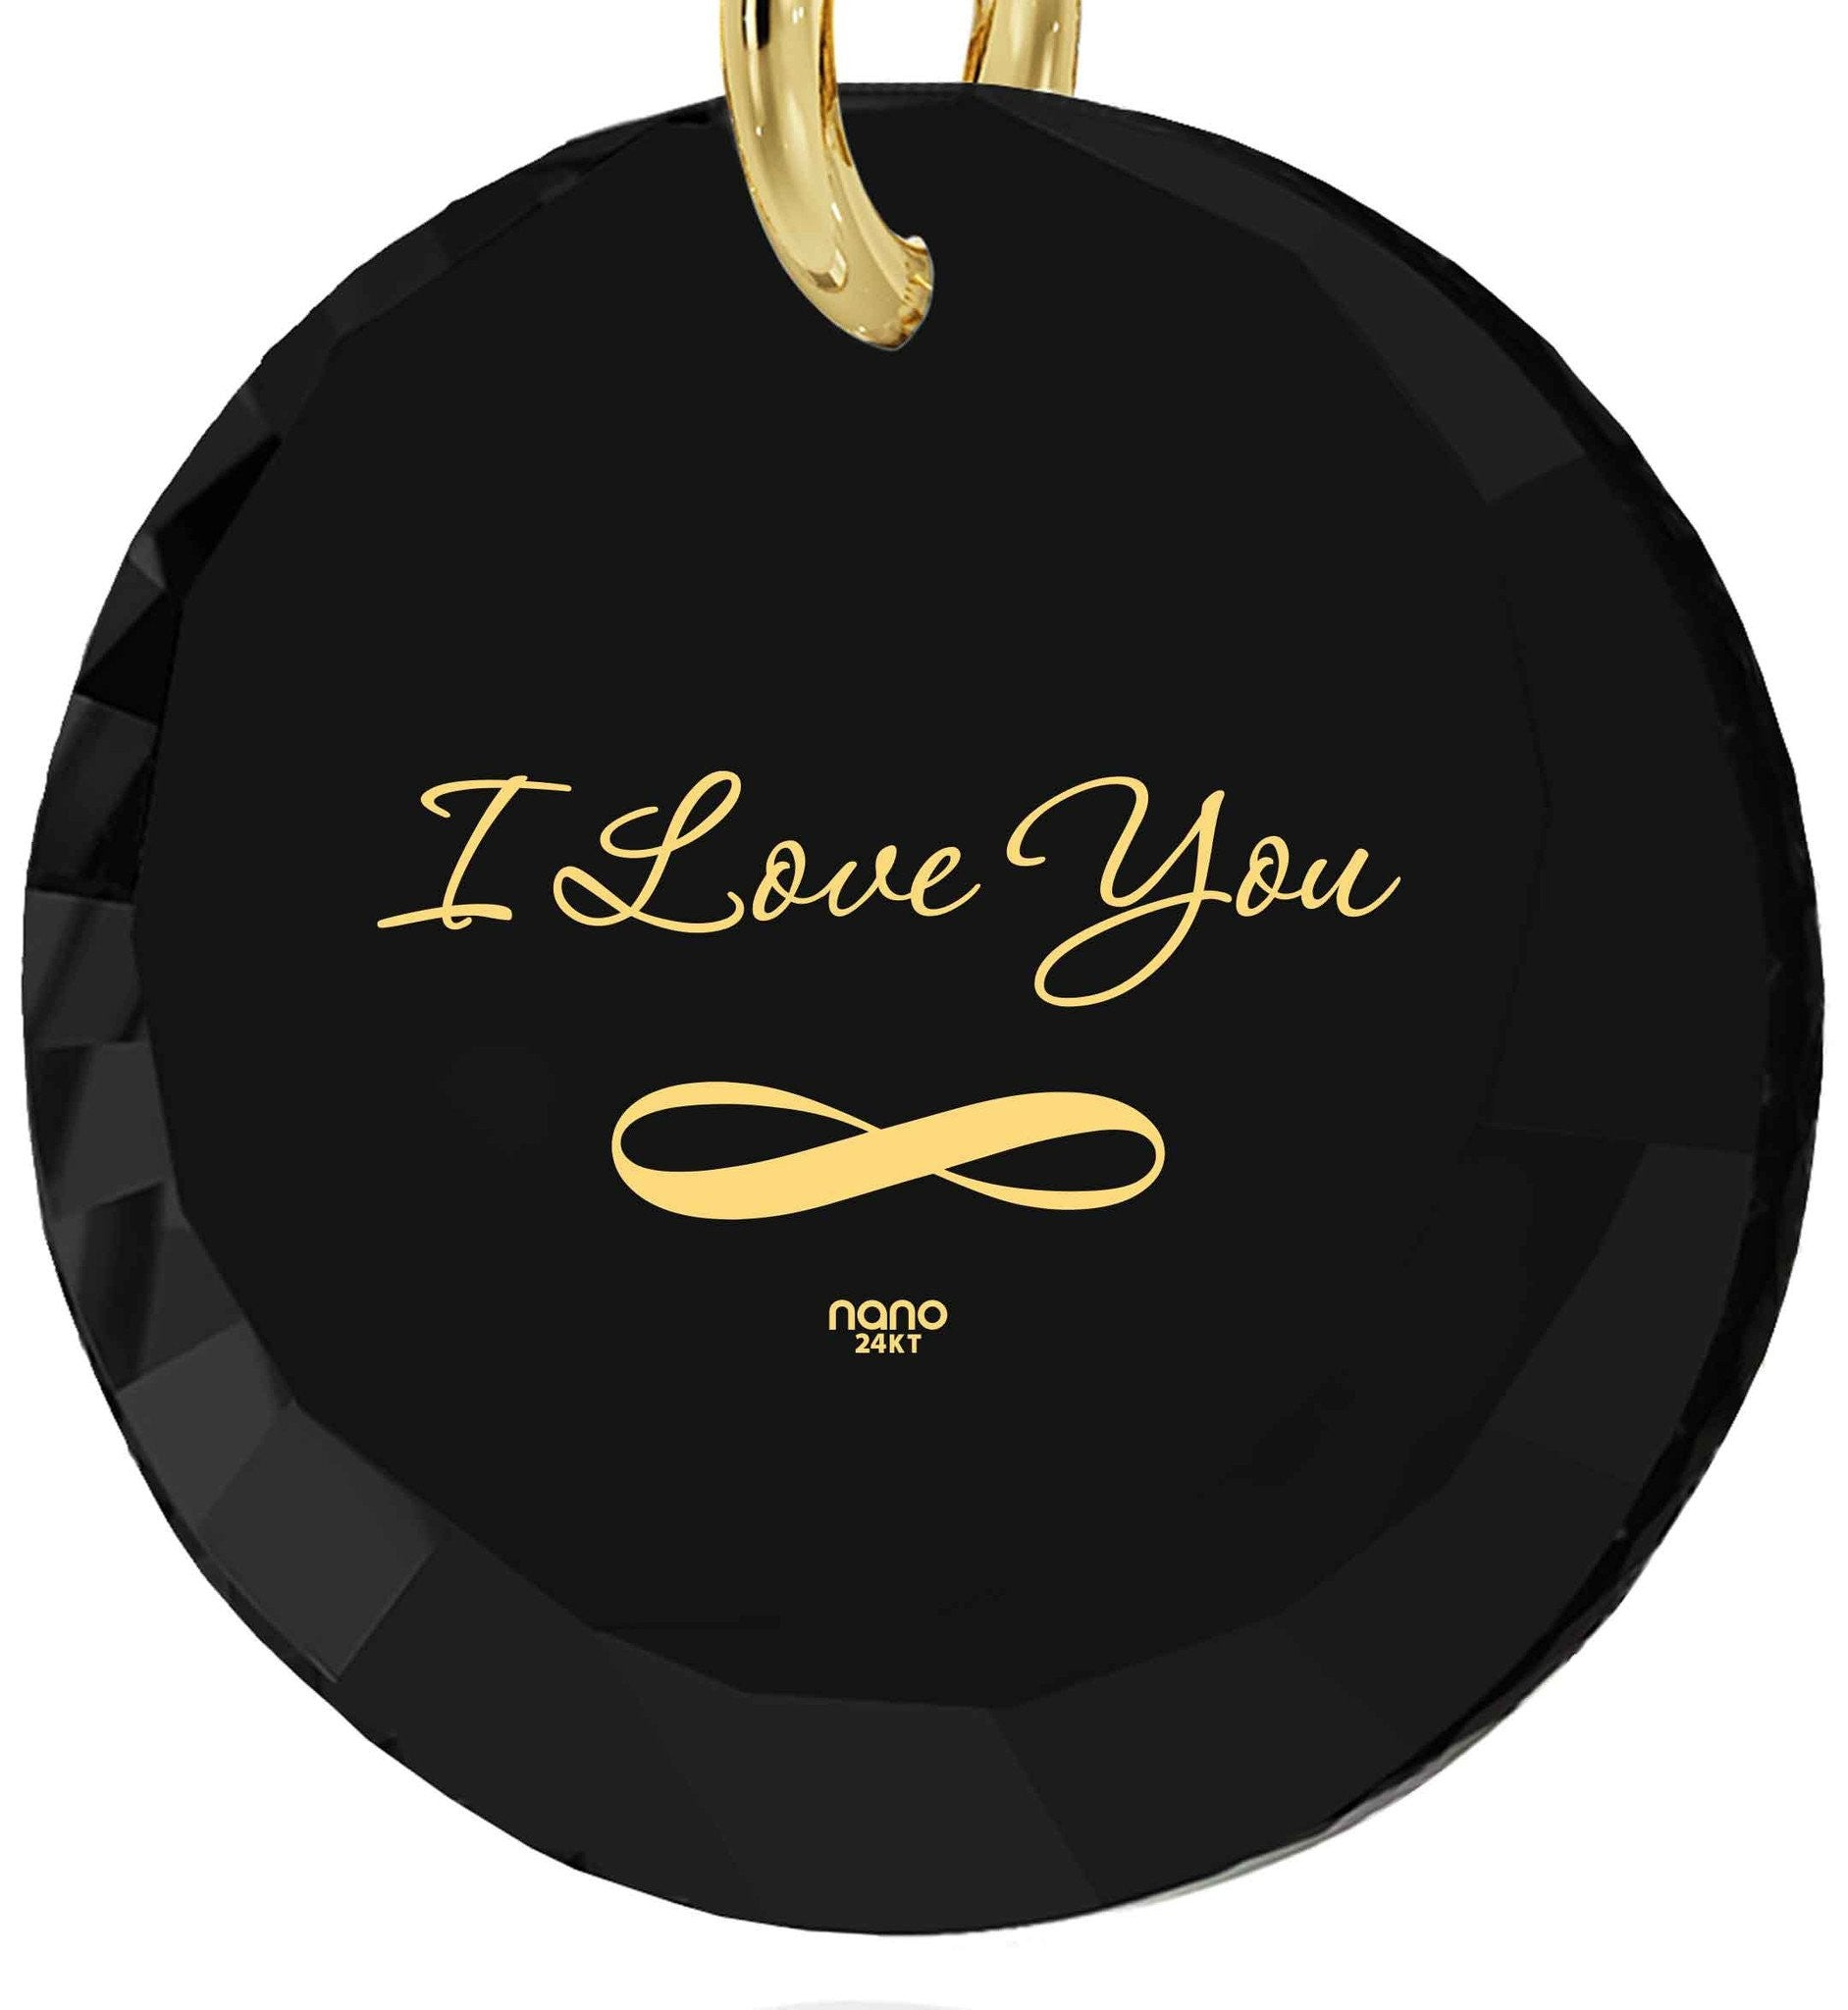 "What to Get Wife for Christmas,""I Love You Infinity"" 24k Imprint, I Love You Necklace for Girlfriend, Nano Jewelry"